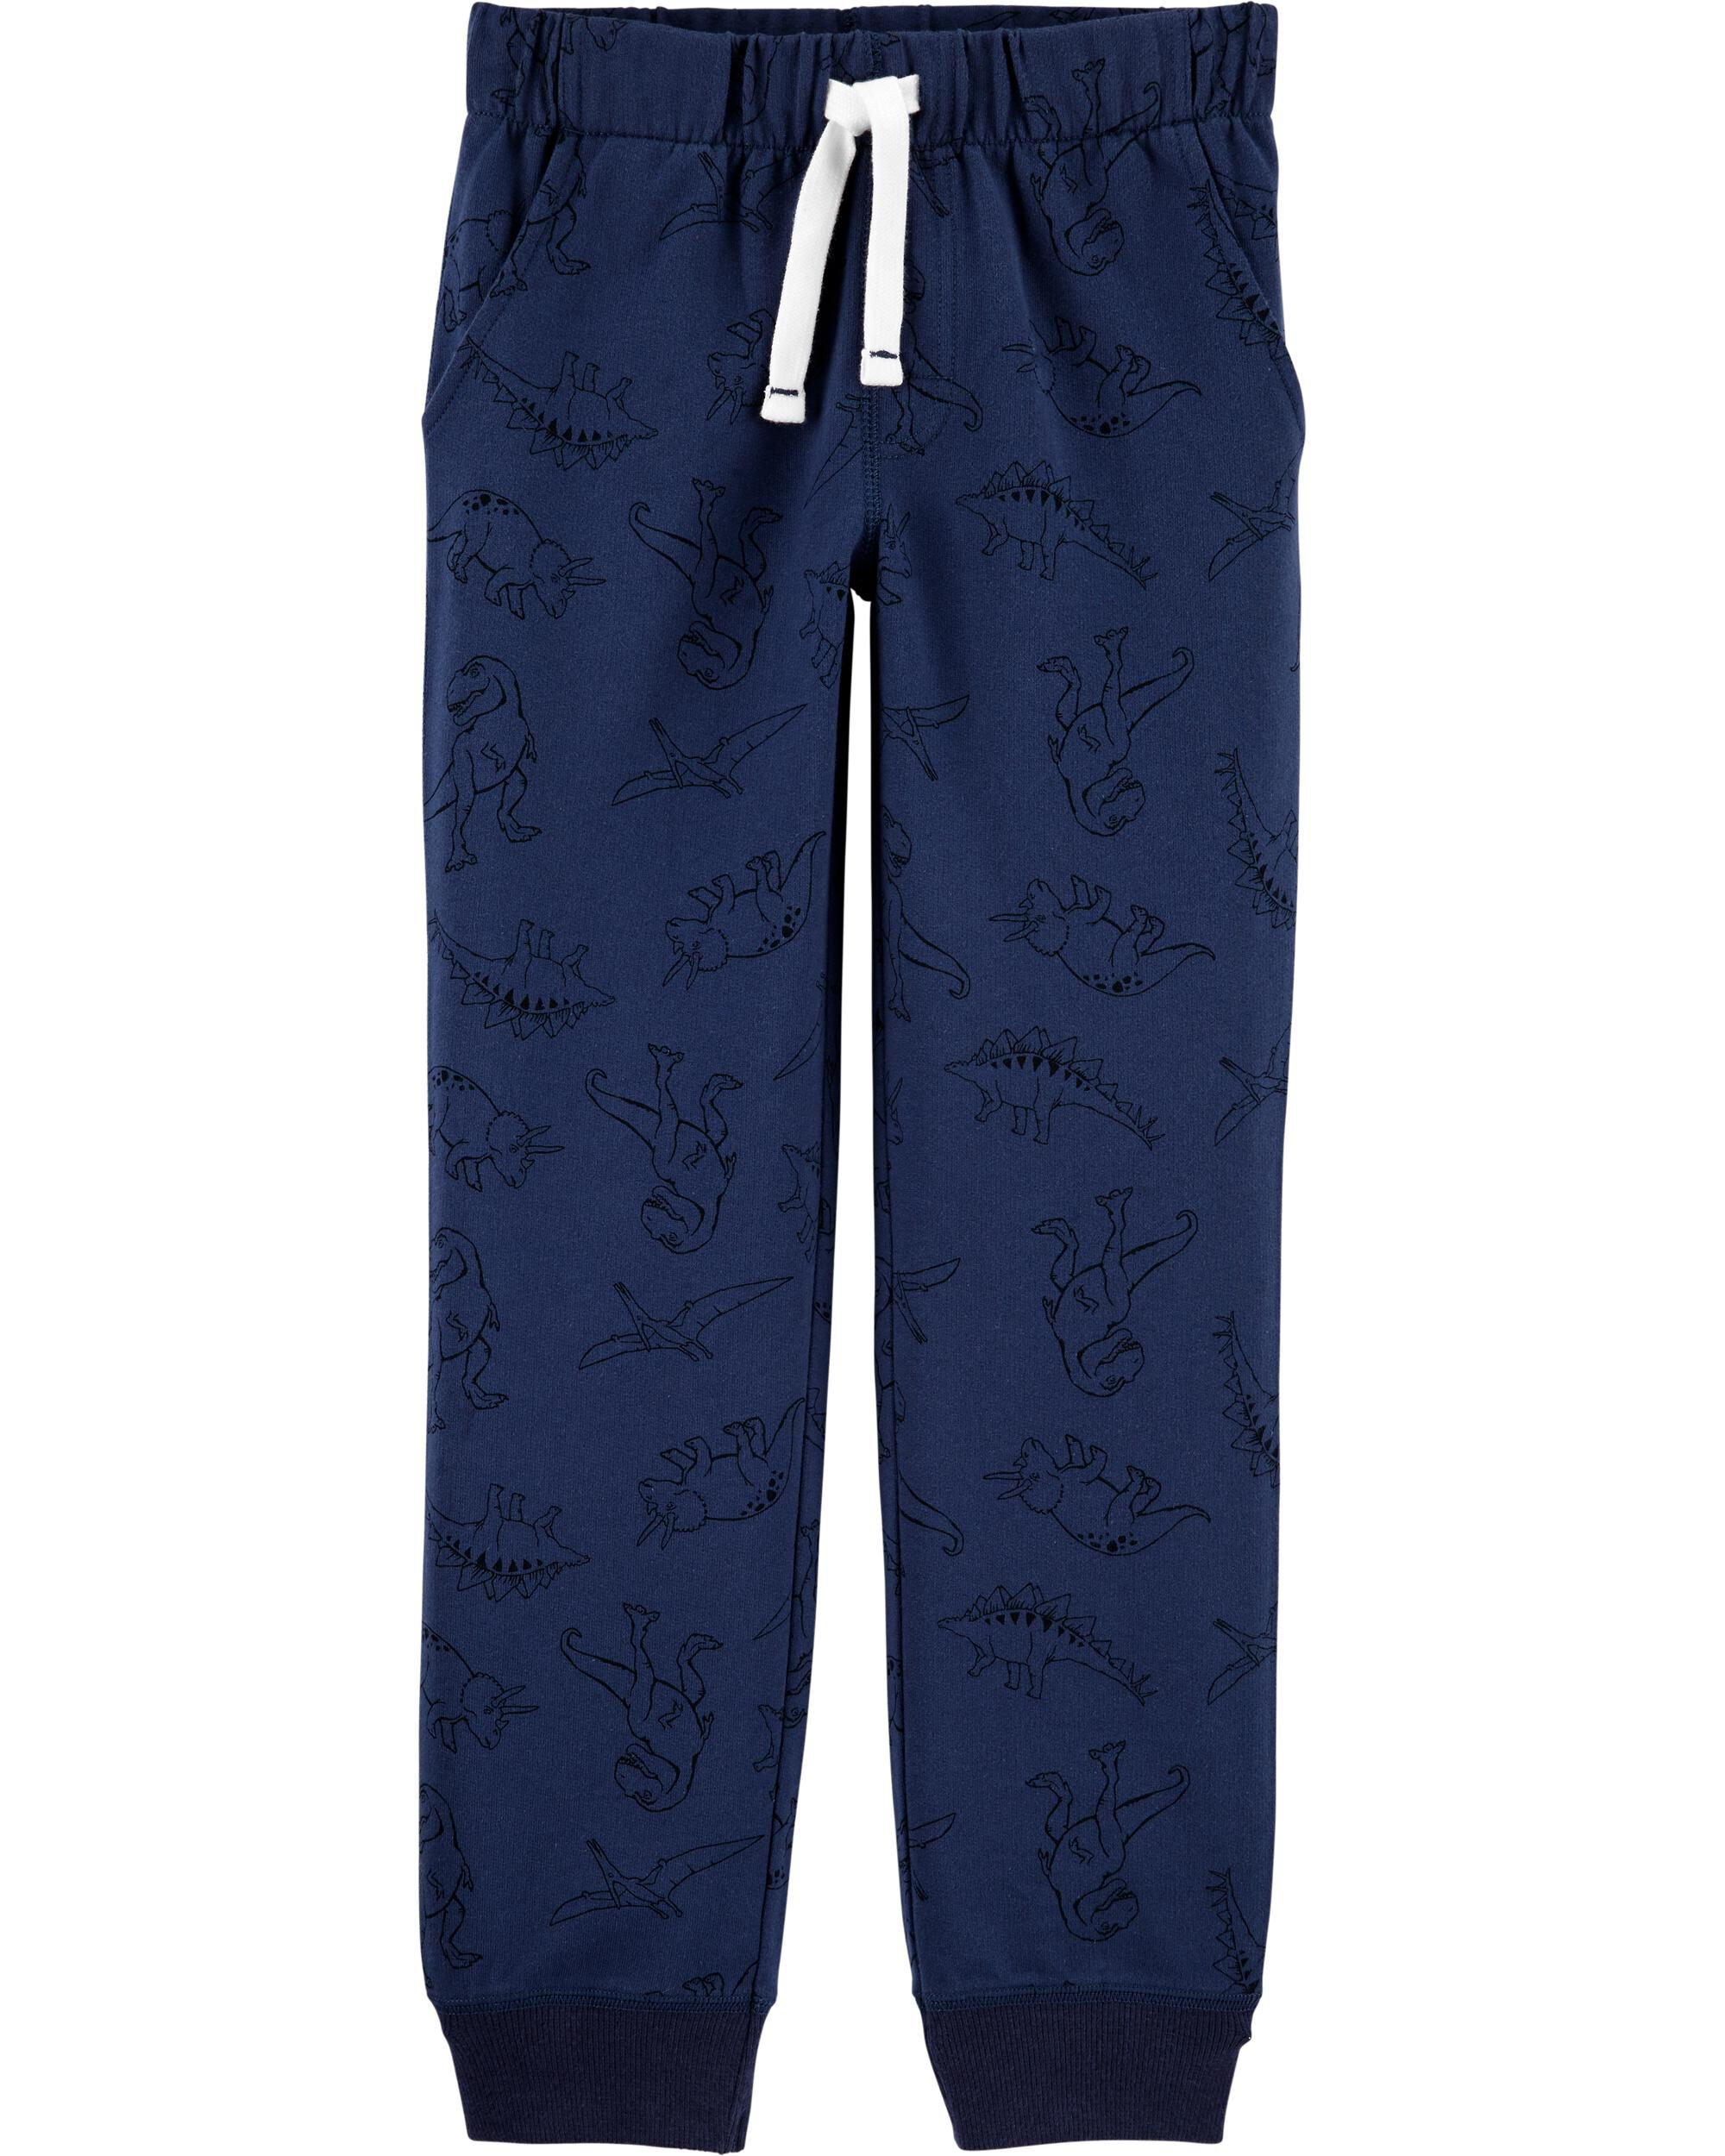 *DOORBUSTER* Dinosaur Pull-On French Terry Joggers